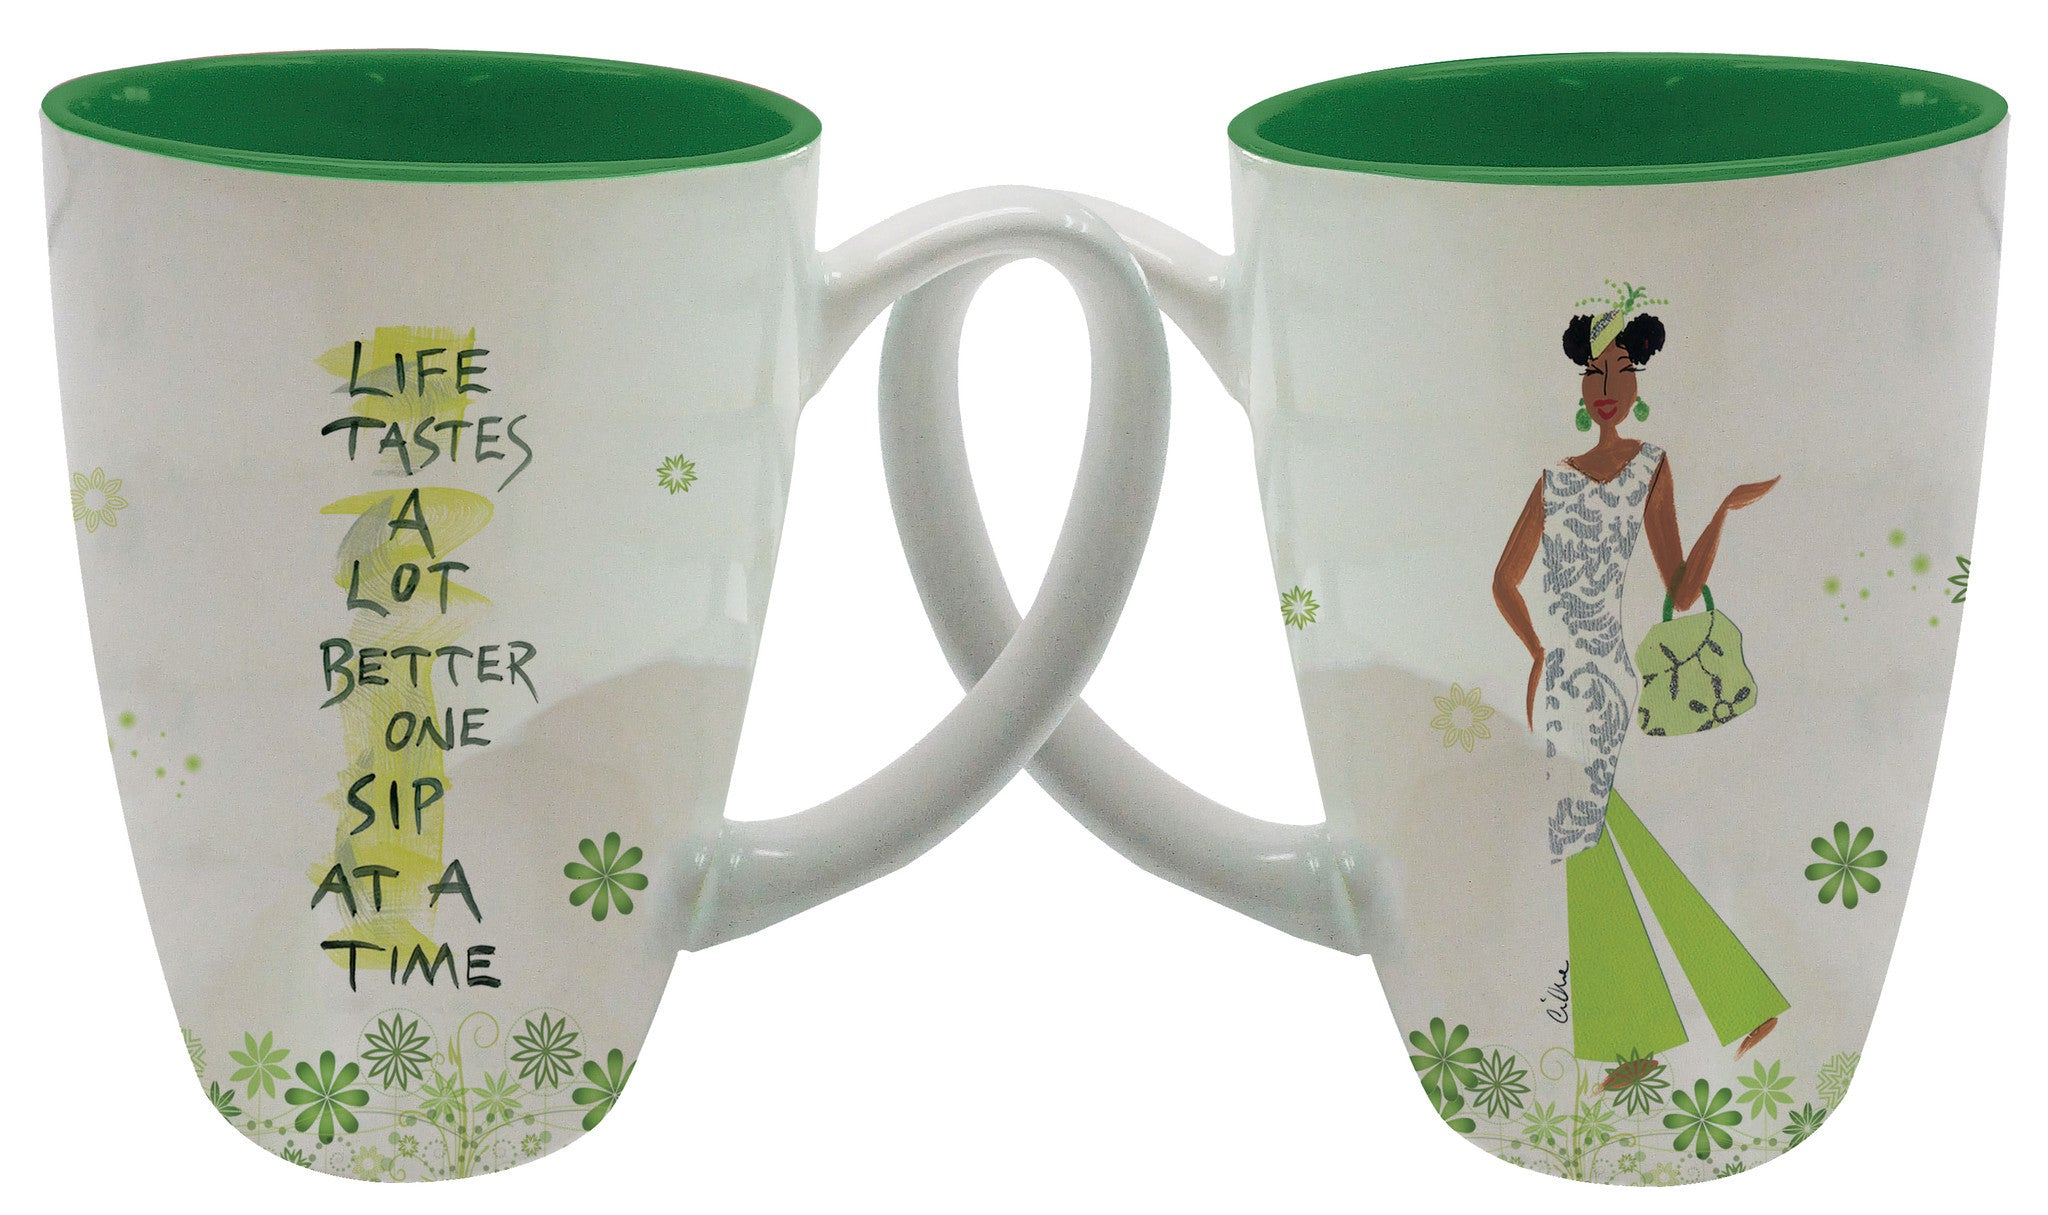 Life Tastes a lot Better One Sip at a Time Latte Mug by Cidne Wallace